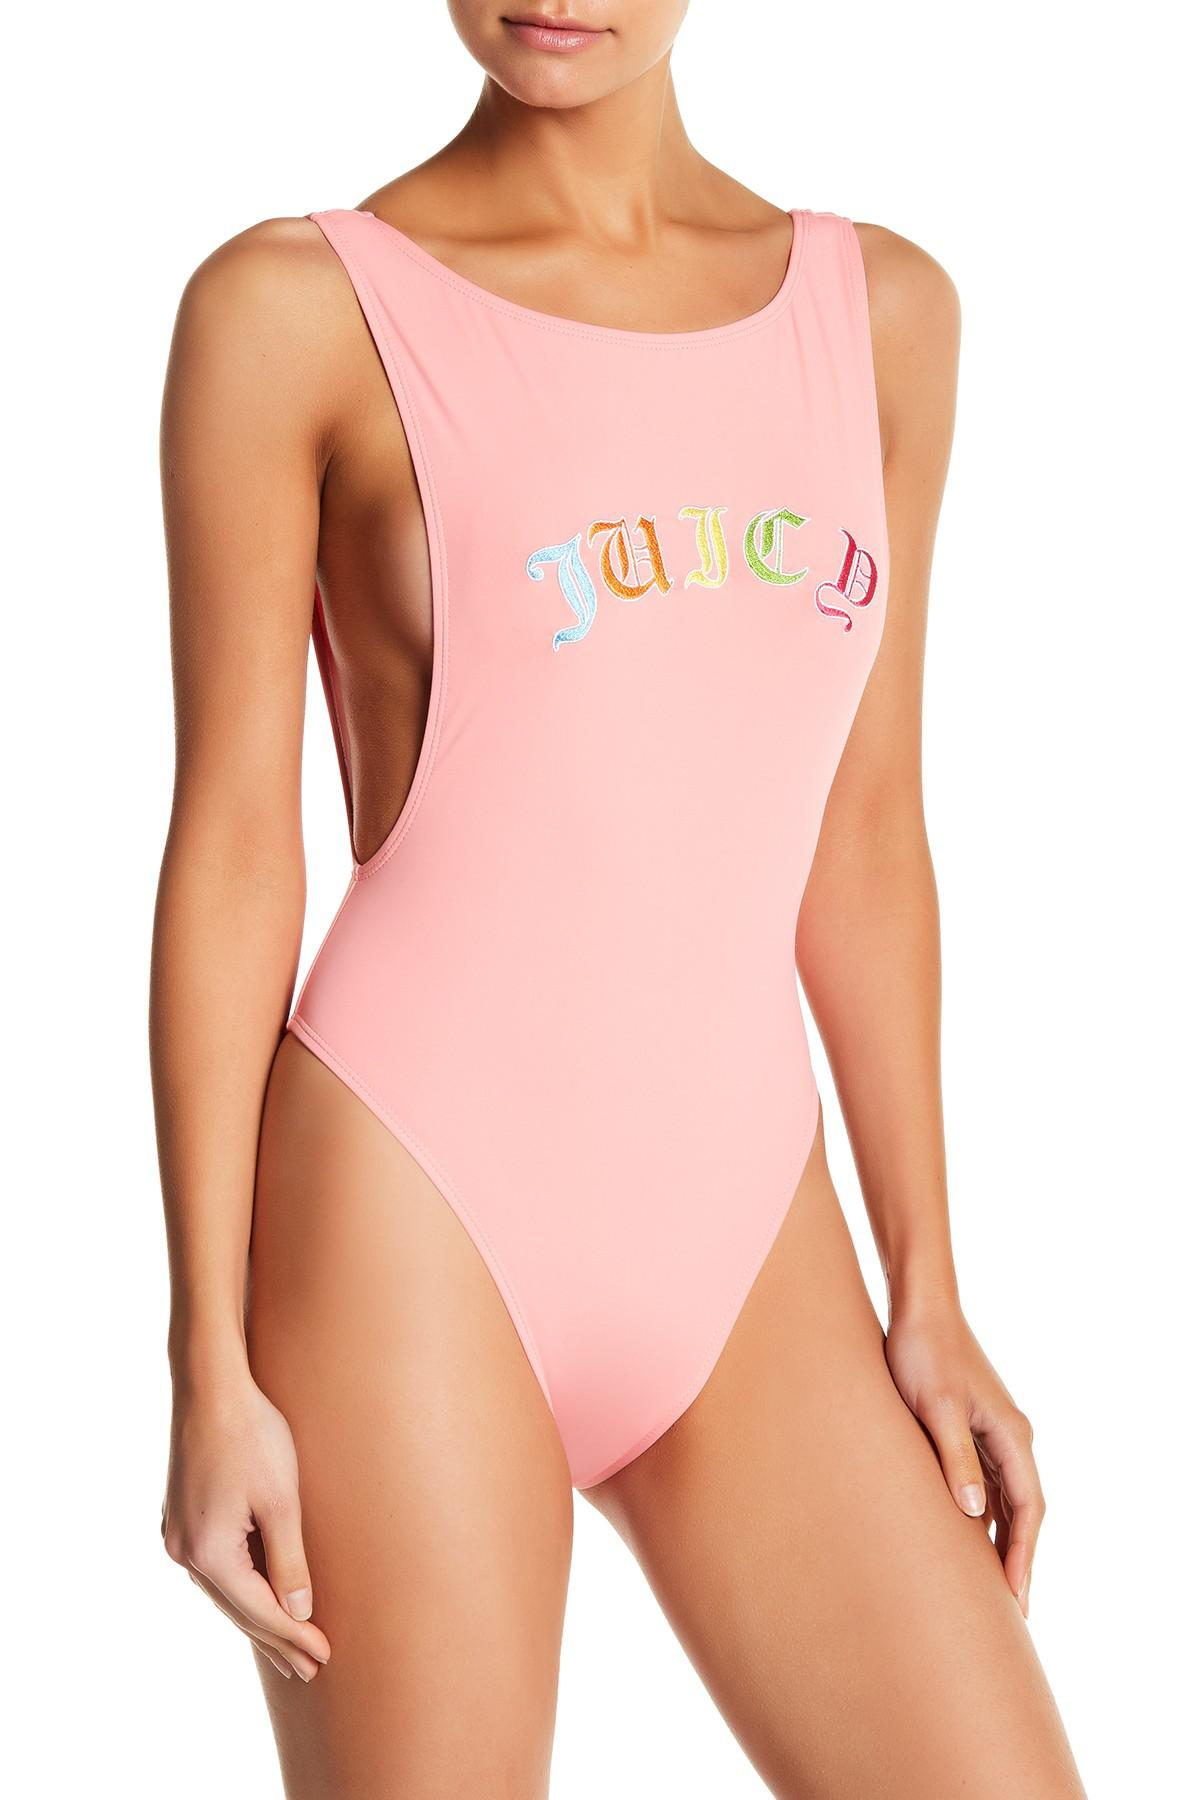 fac471b6cdc4c Juicy Couture Embroidered Juicy One-piece Swimsuit in Pink - Lyst